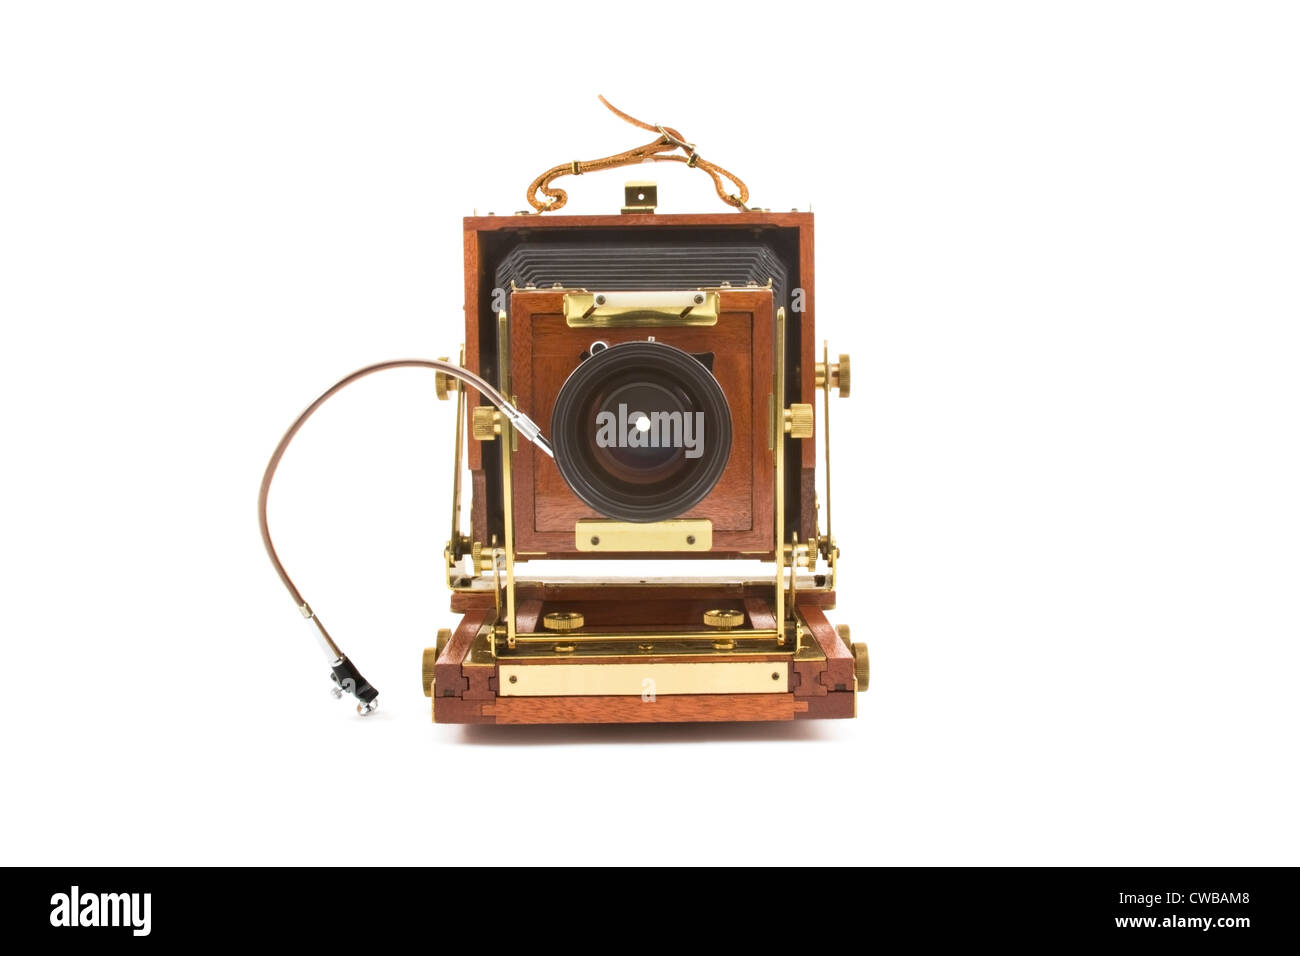 Large format field camera isolated on white background. - Stock Image